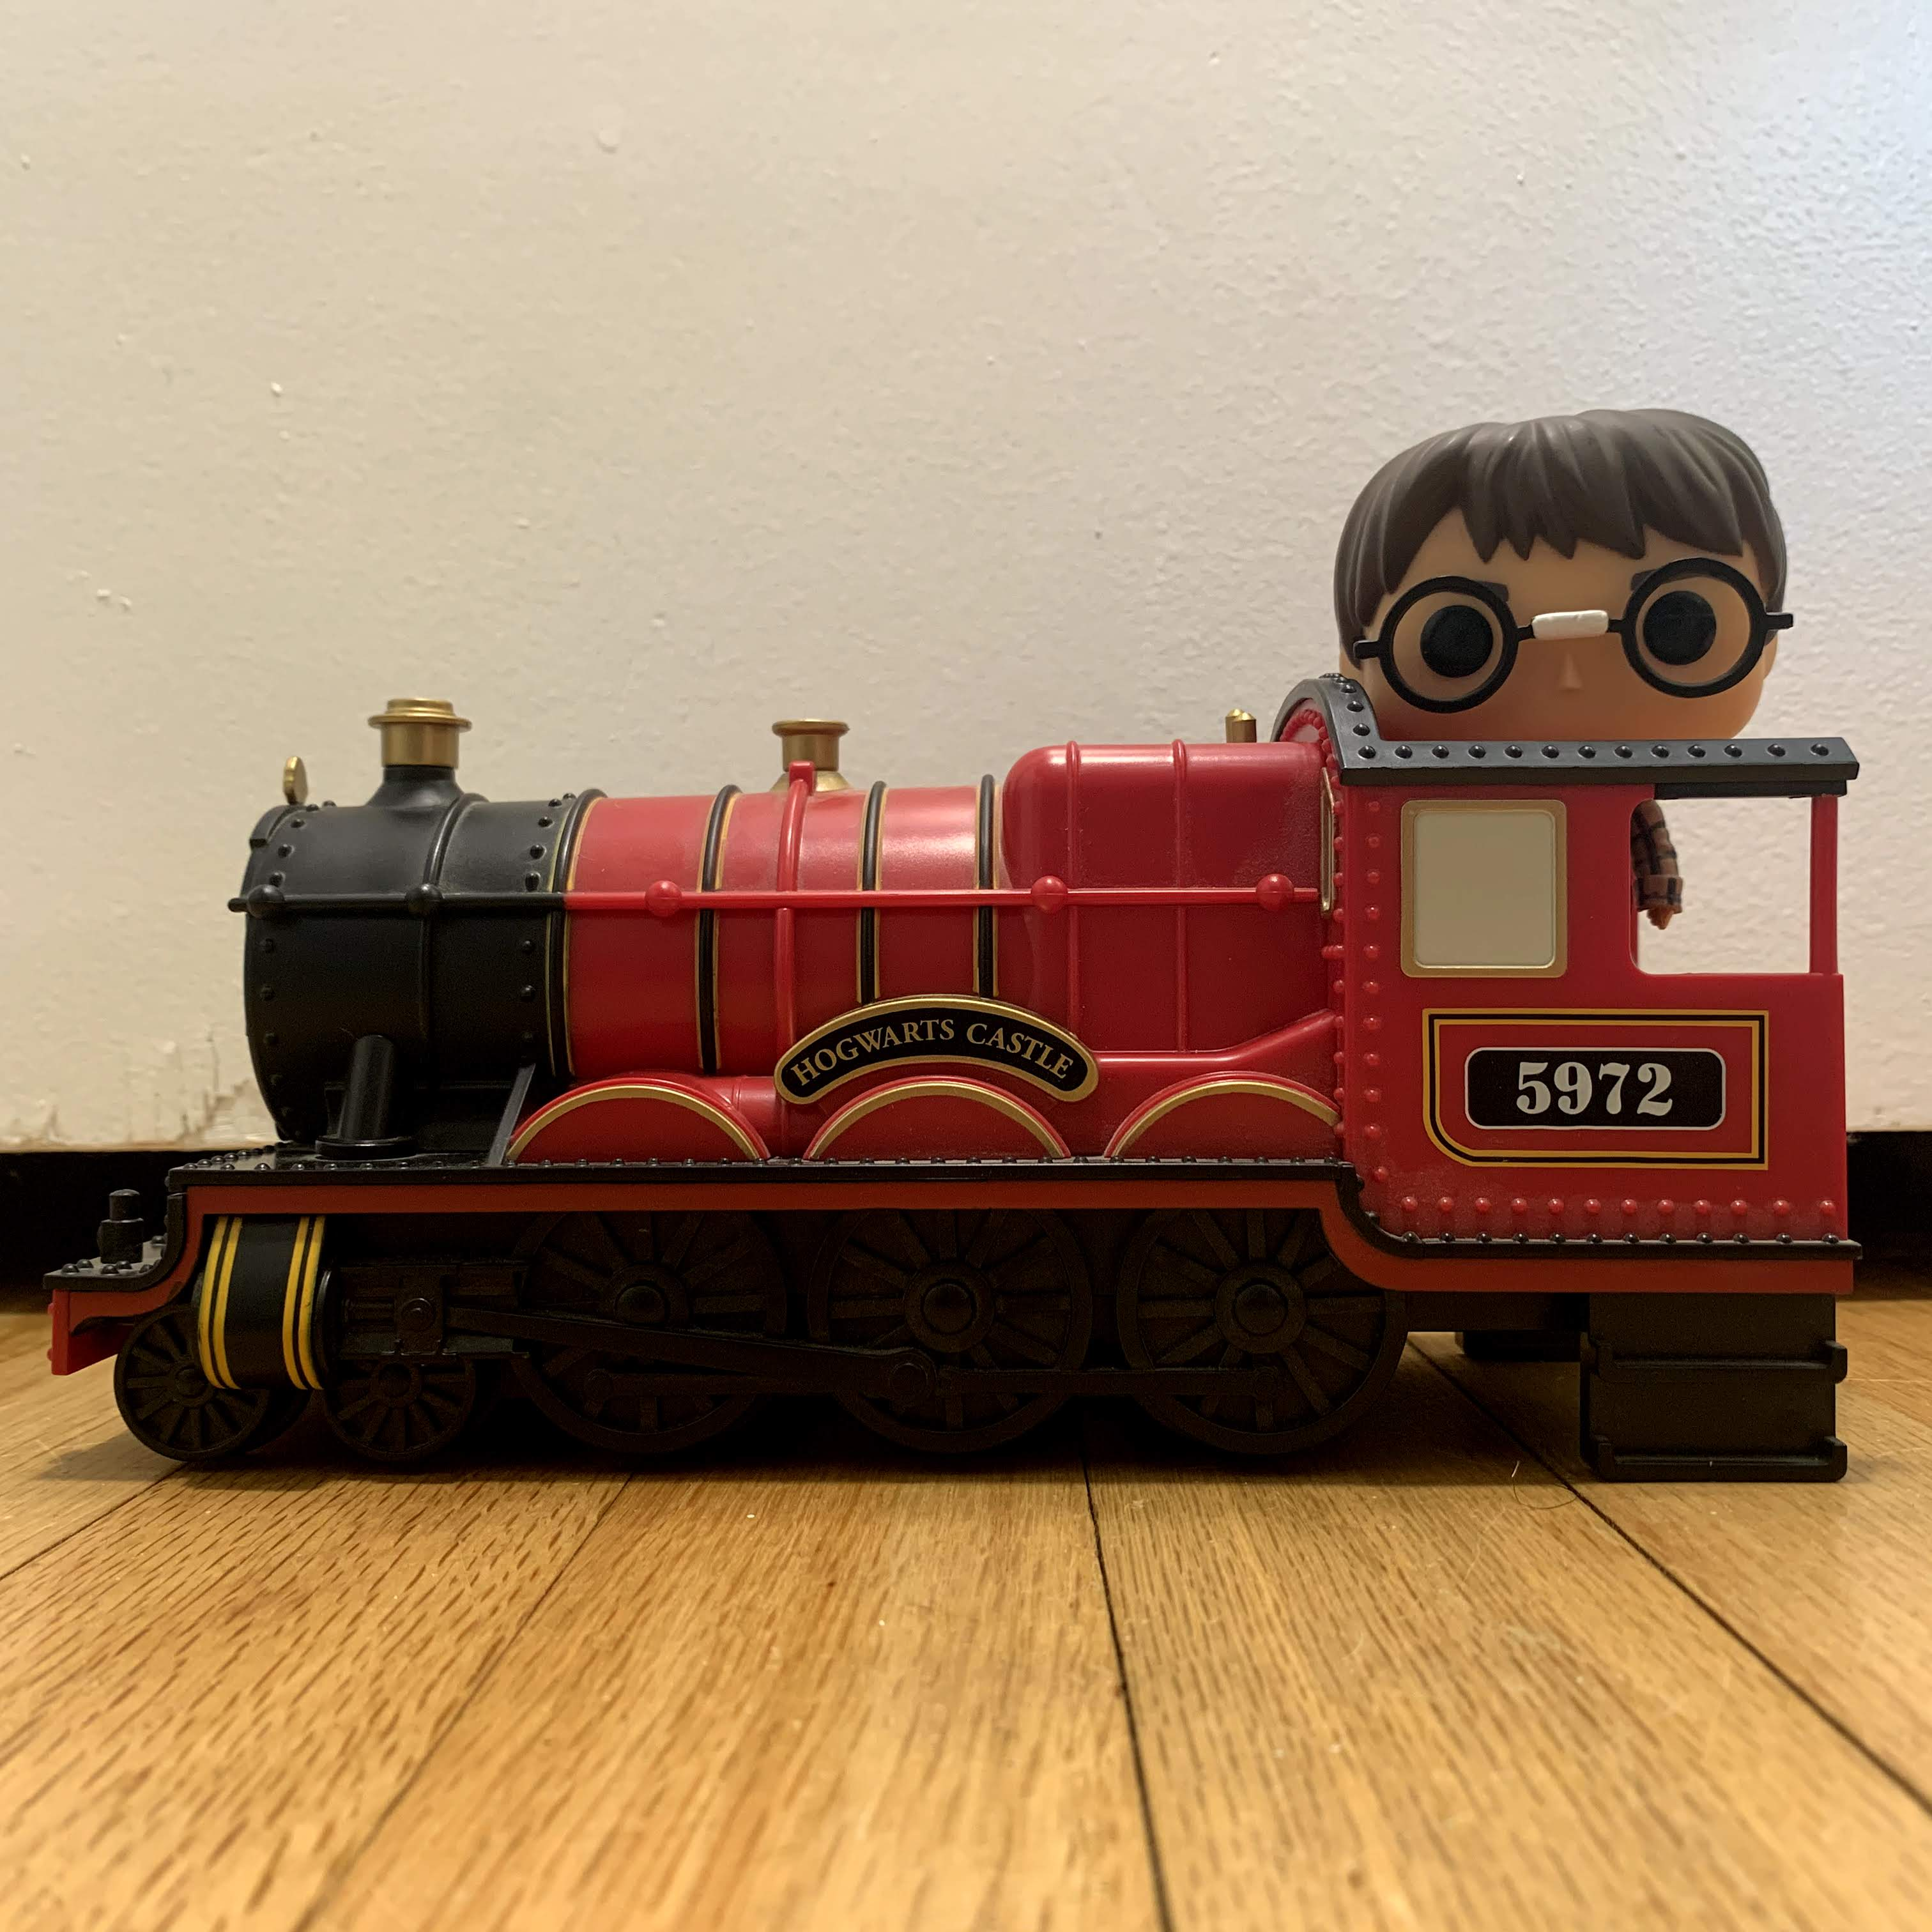 20 Hogwarts Express Engine with Harry Potter